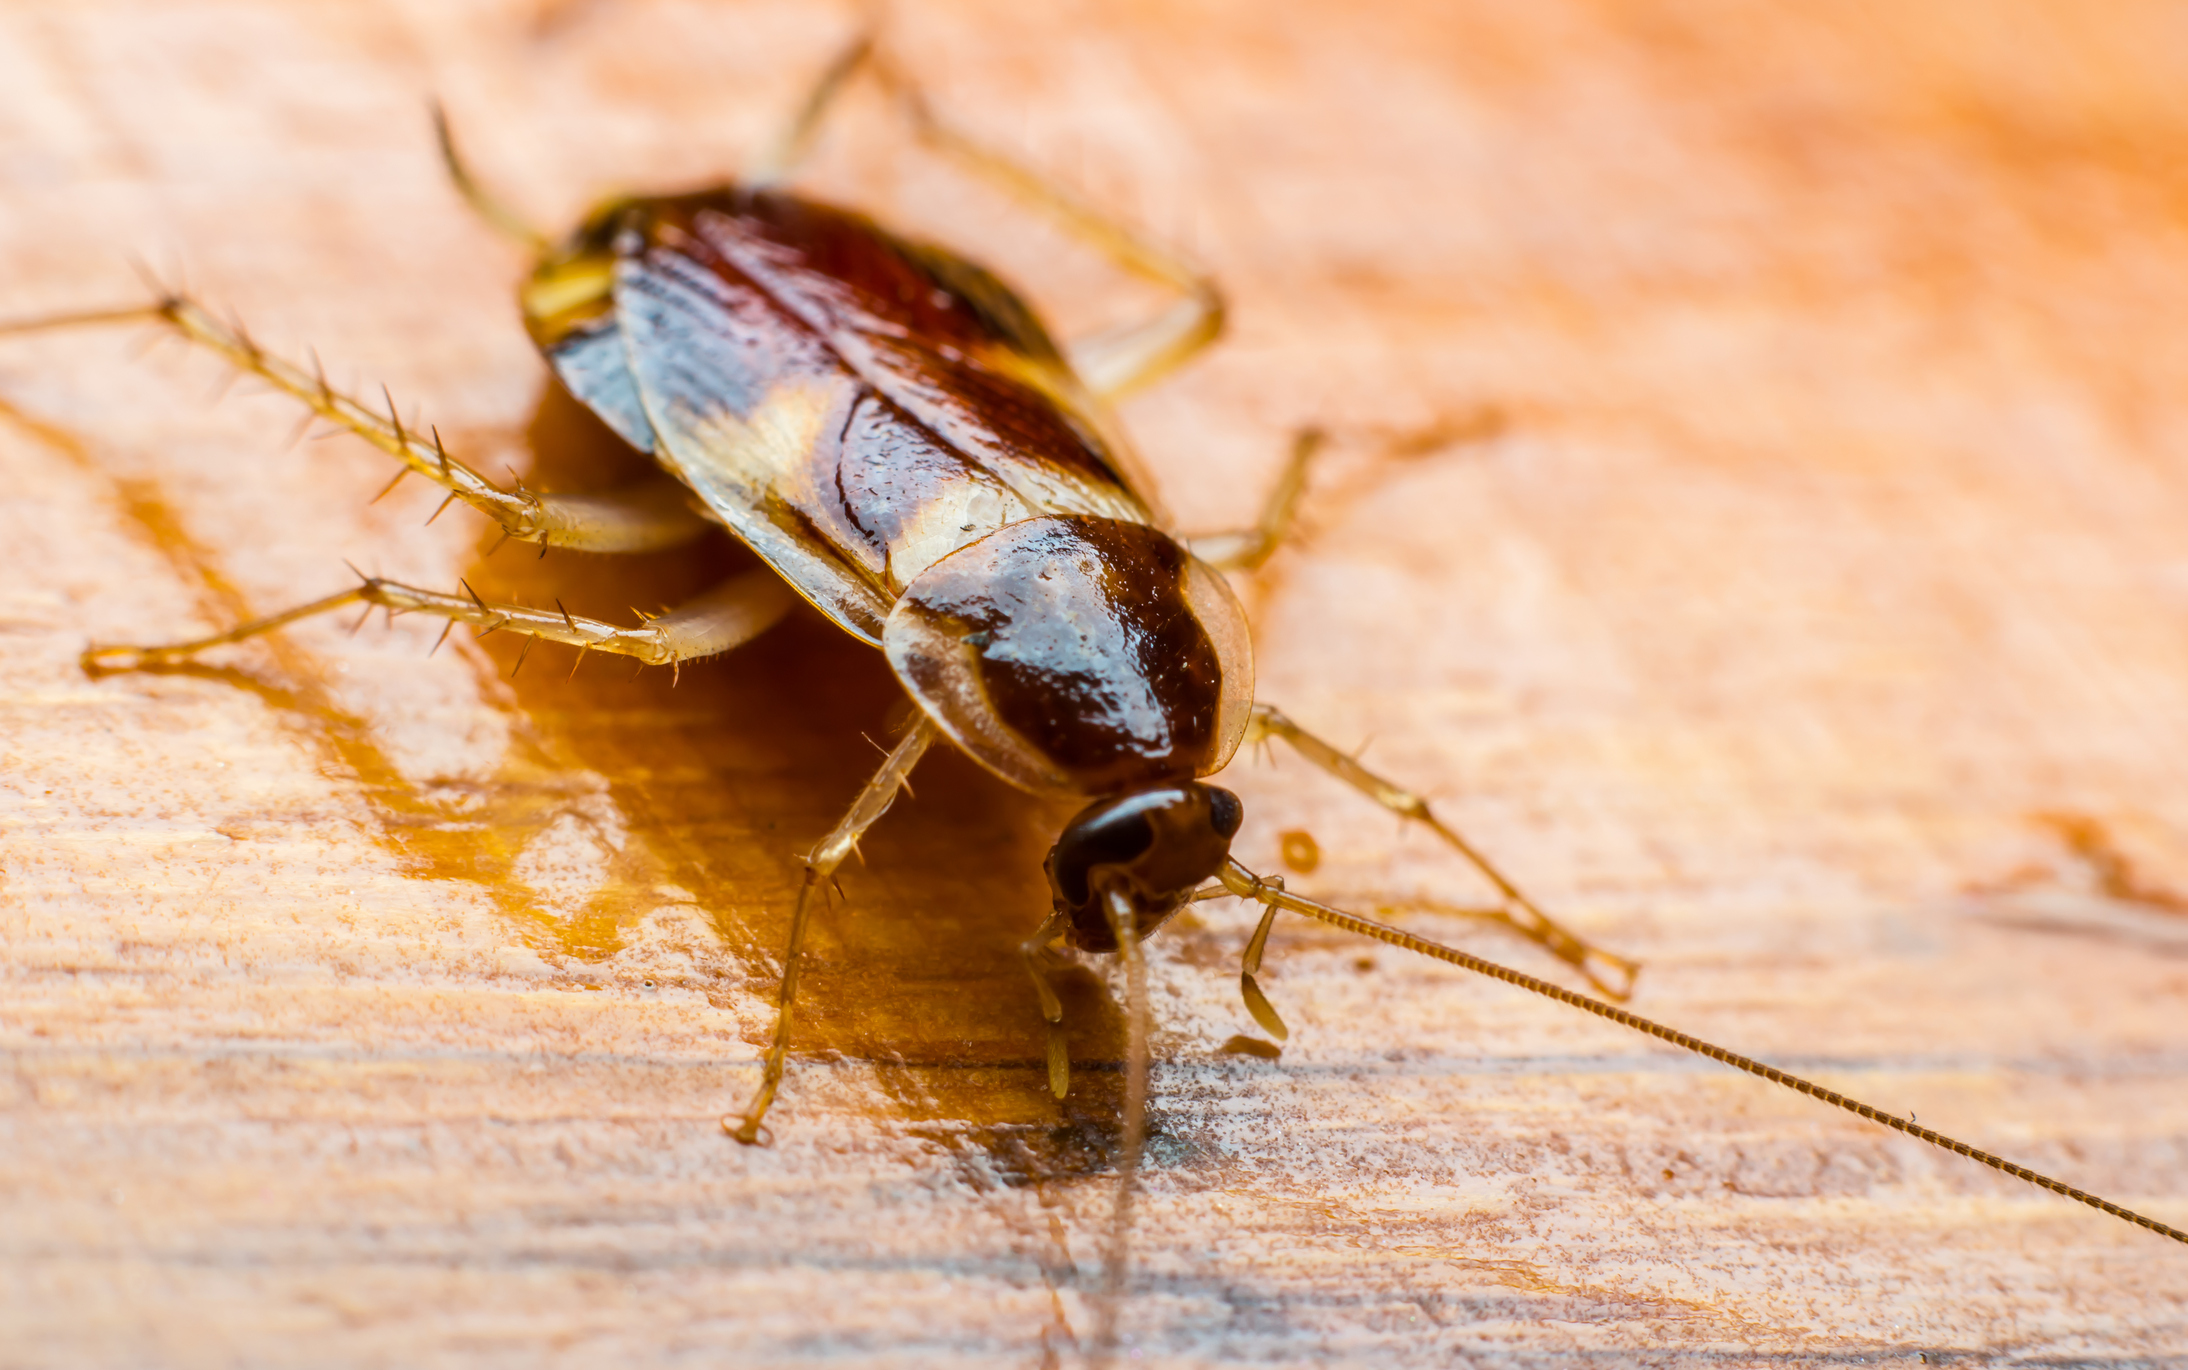 A cockroach on a wooden surface